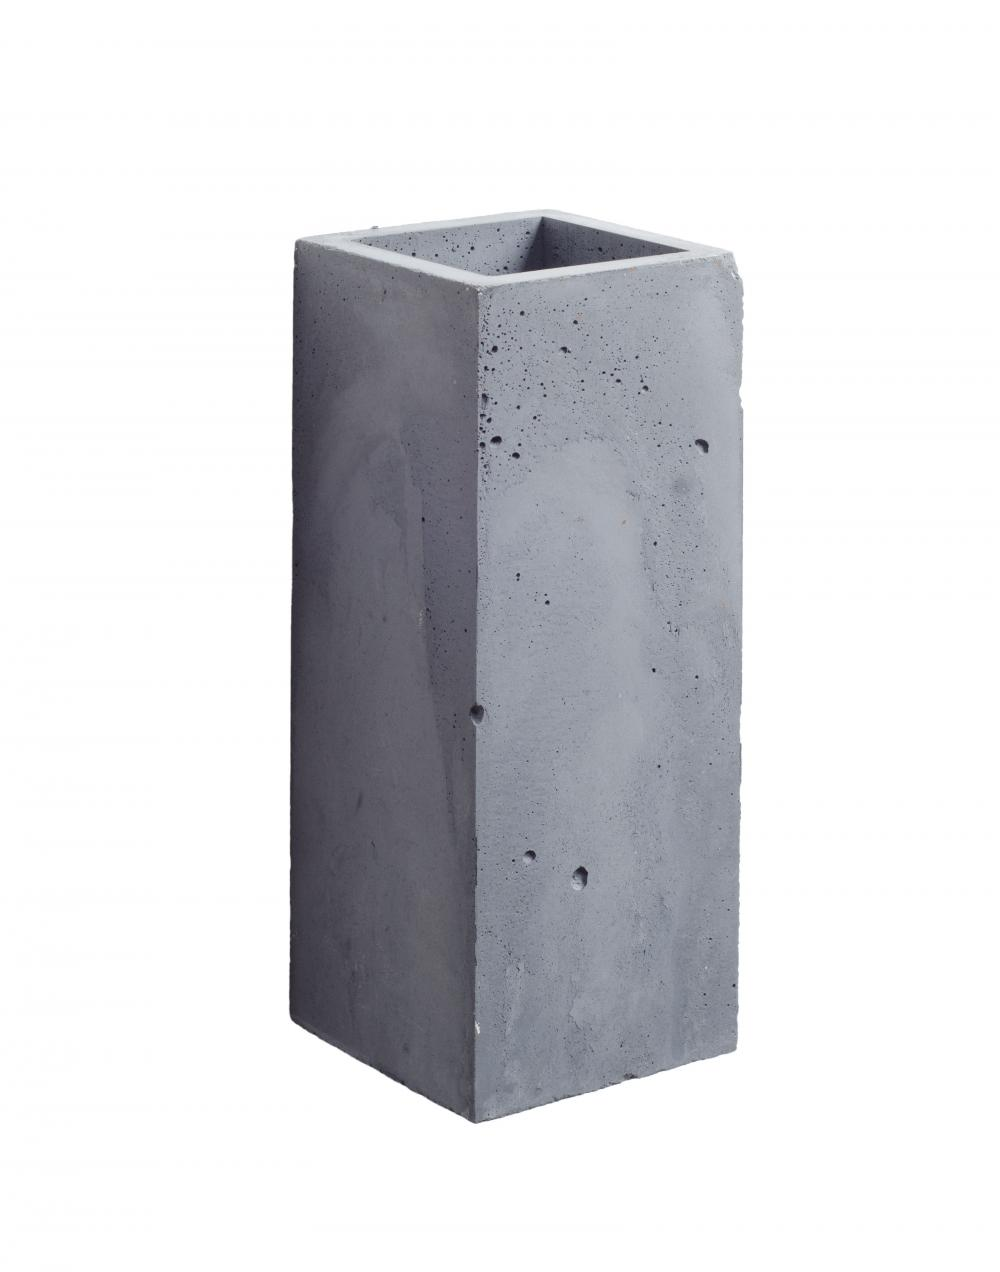 Orto concrete wall light